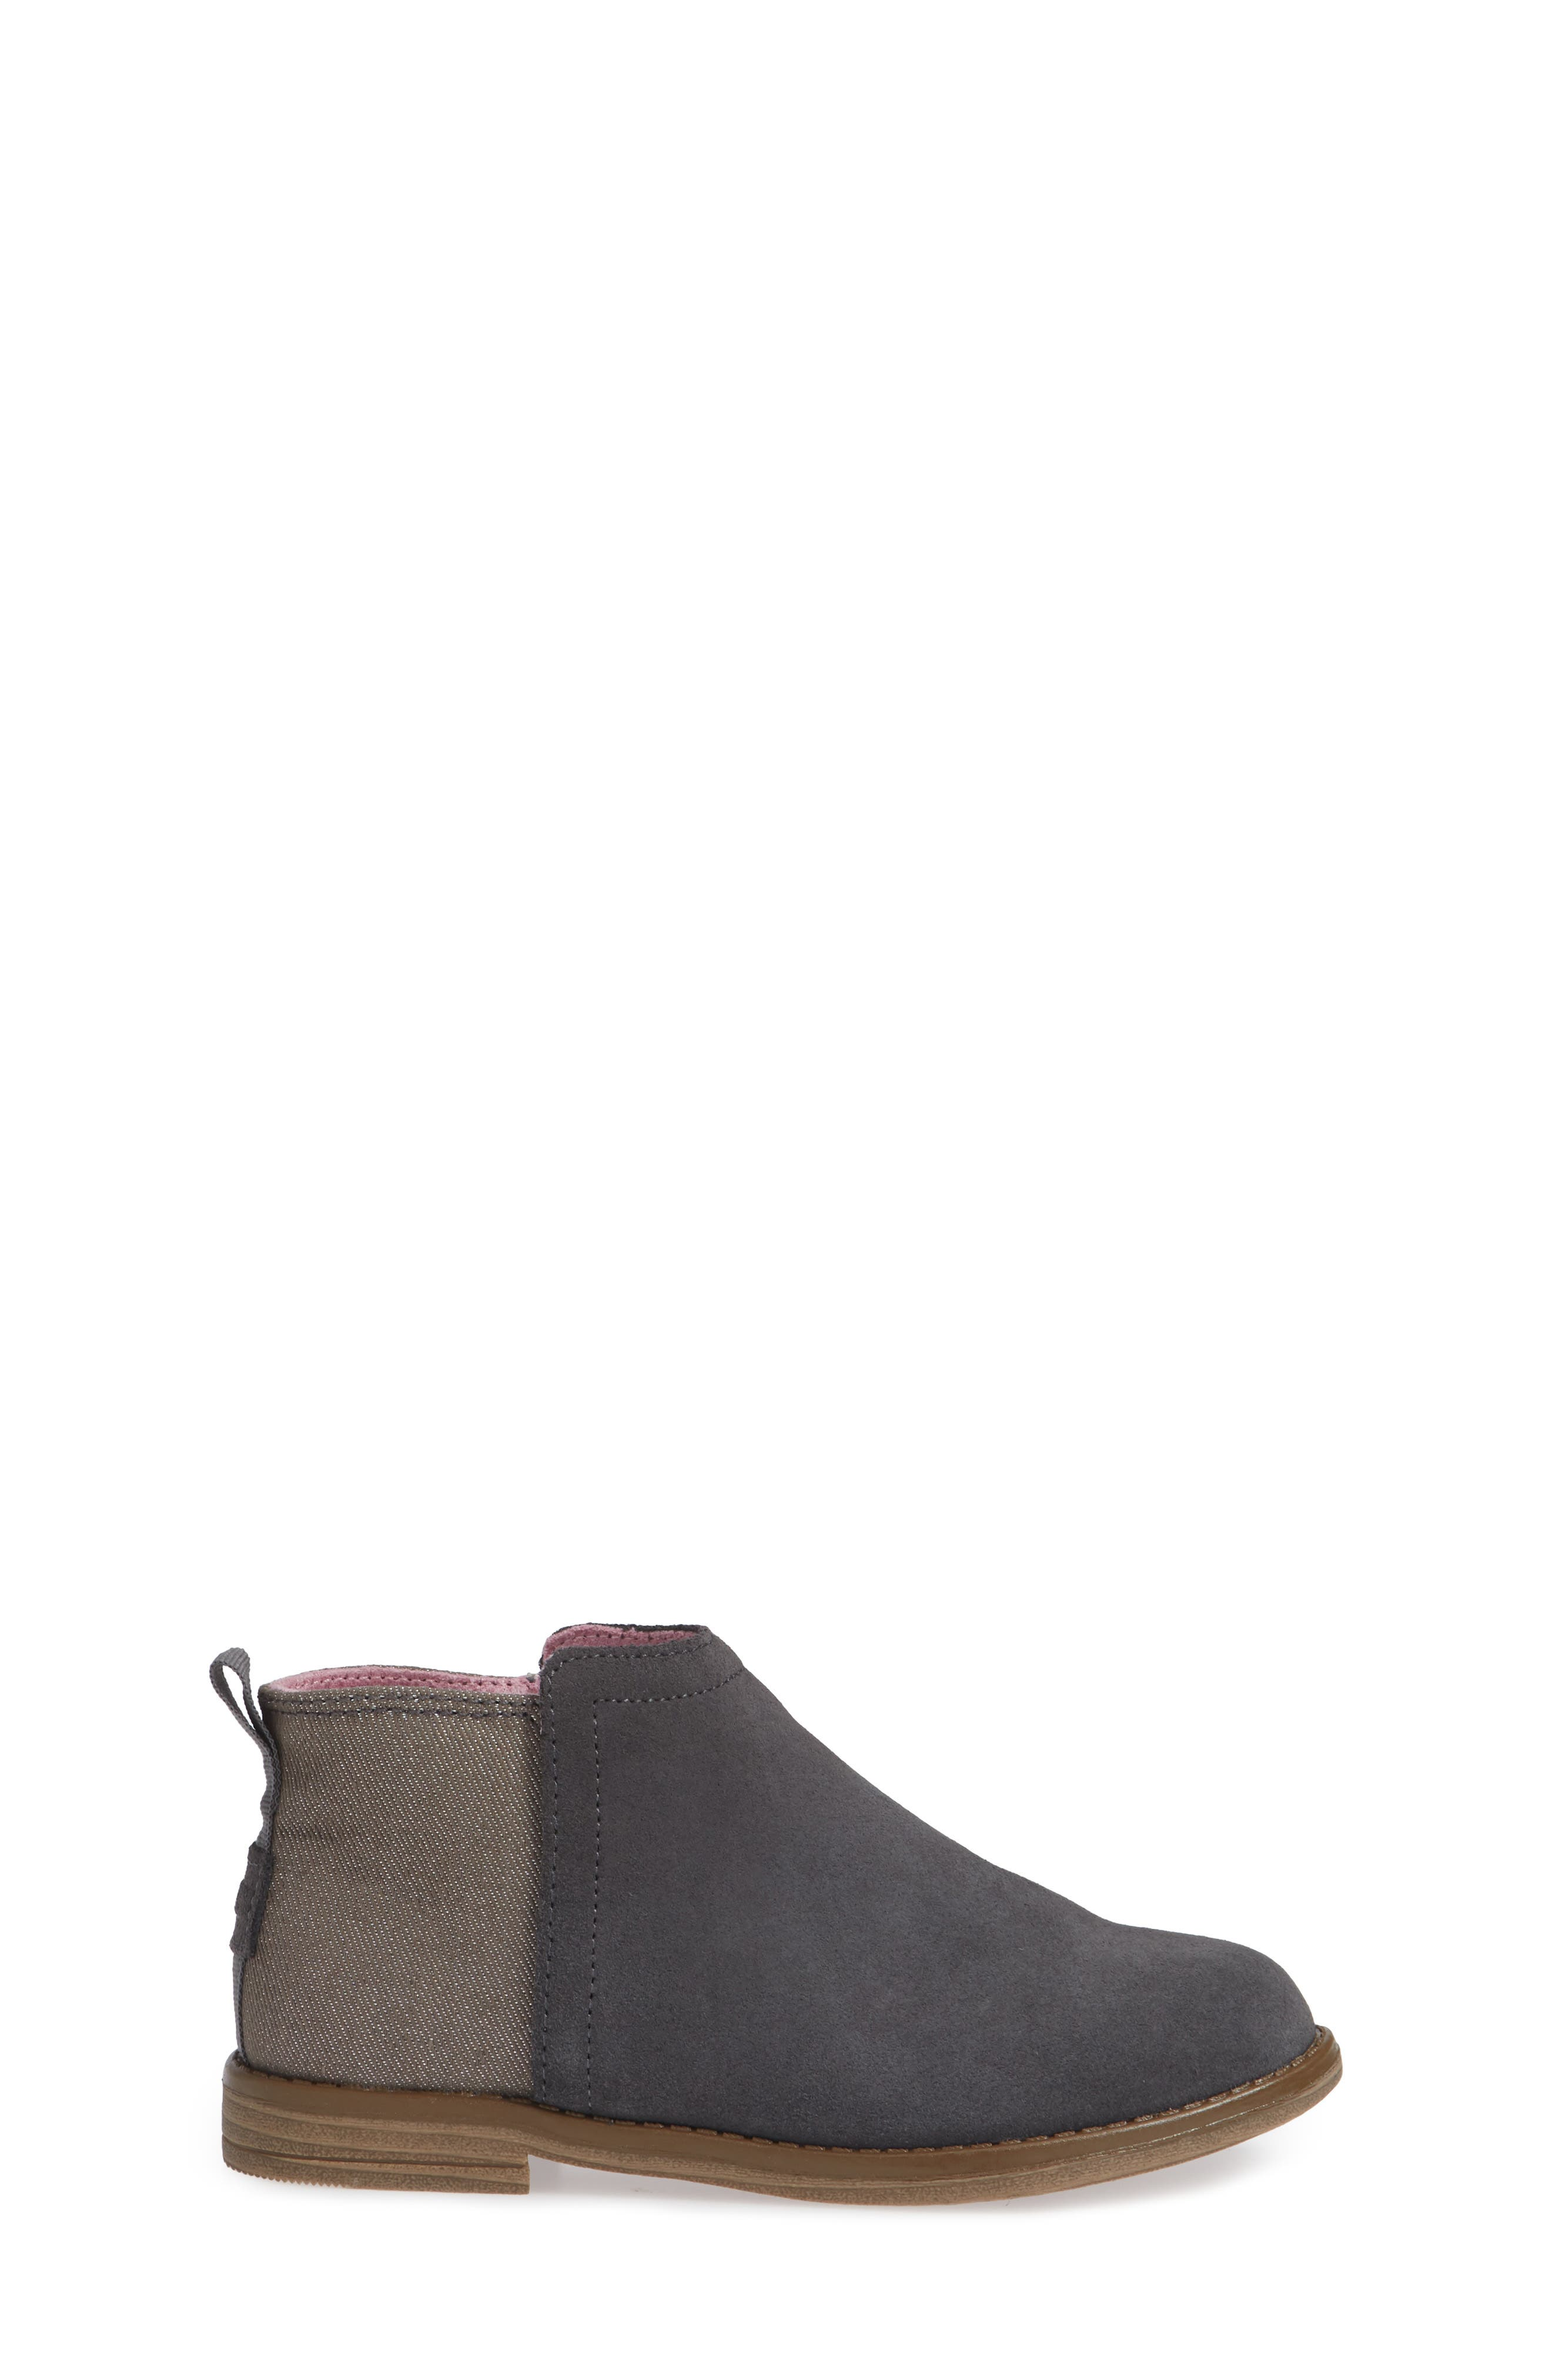 Deia Mixed Media Bootie,                             Alternate thumbnail 3, color,                             Grey Suede Glimmer